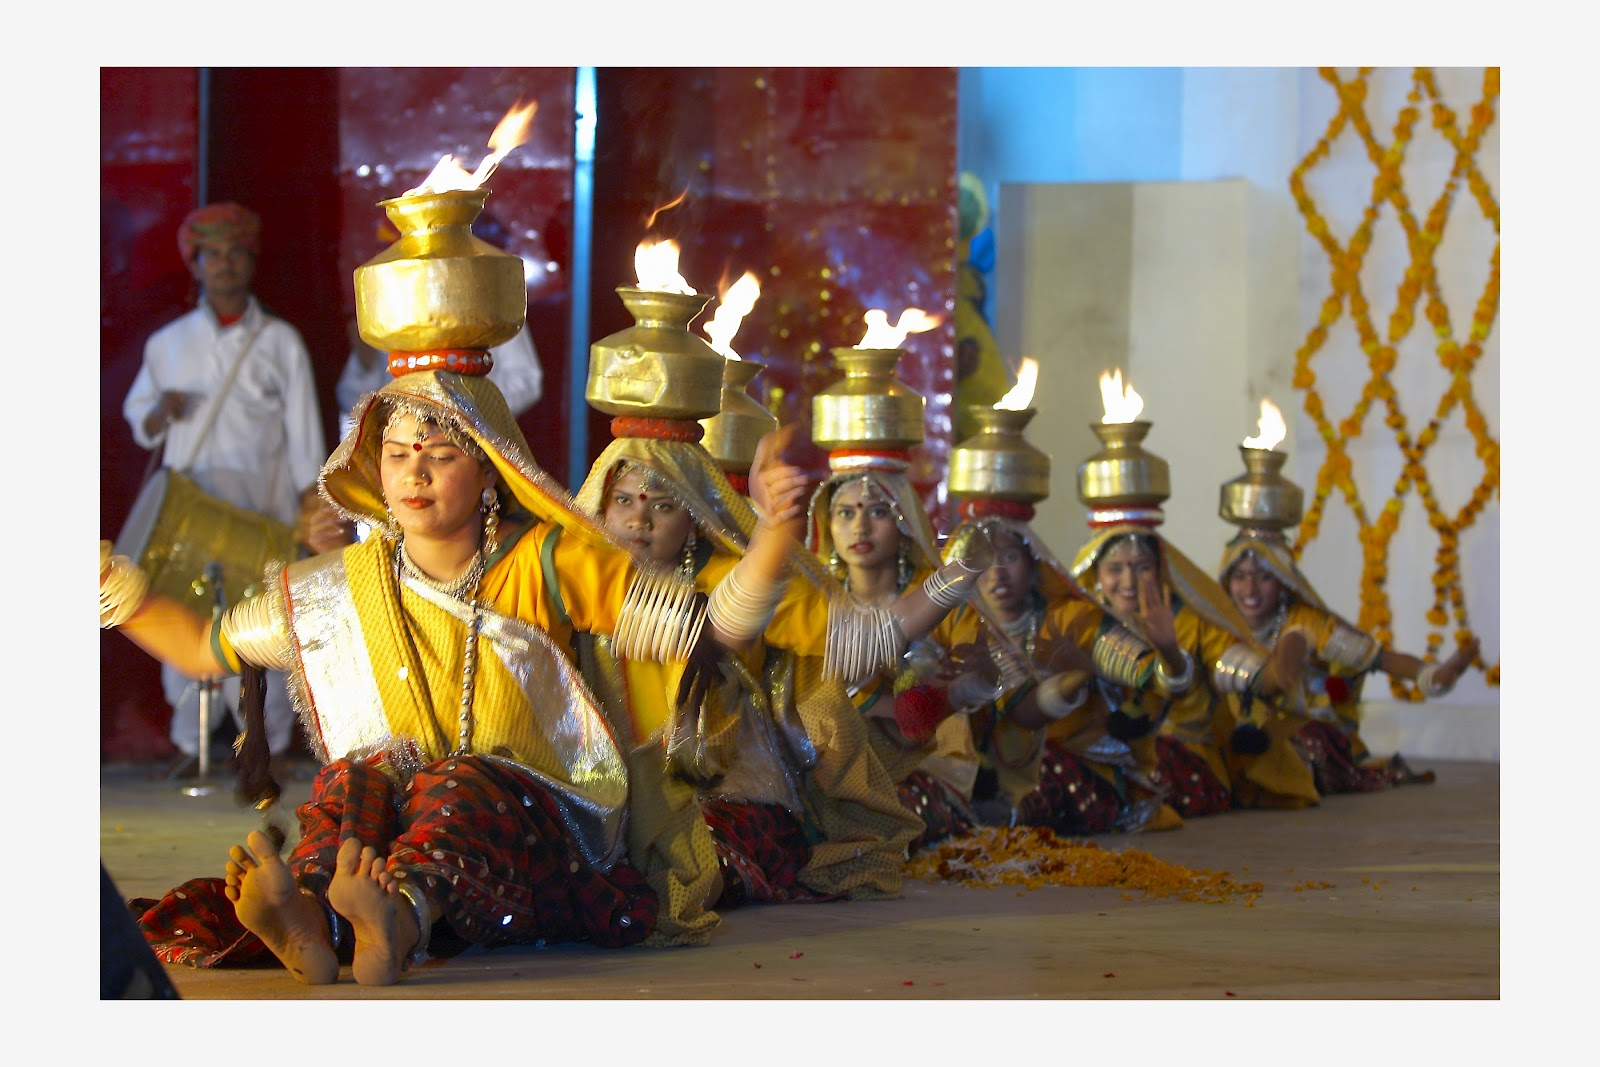 dances of rajasthan, rajasthan tour packages